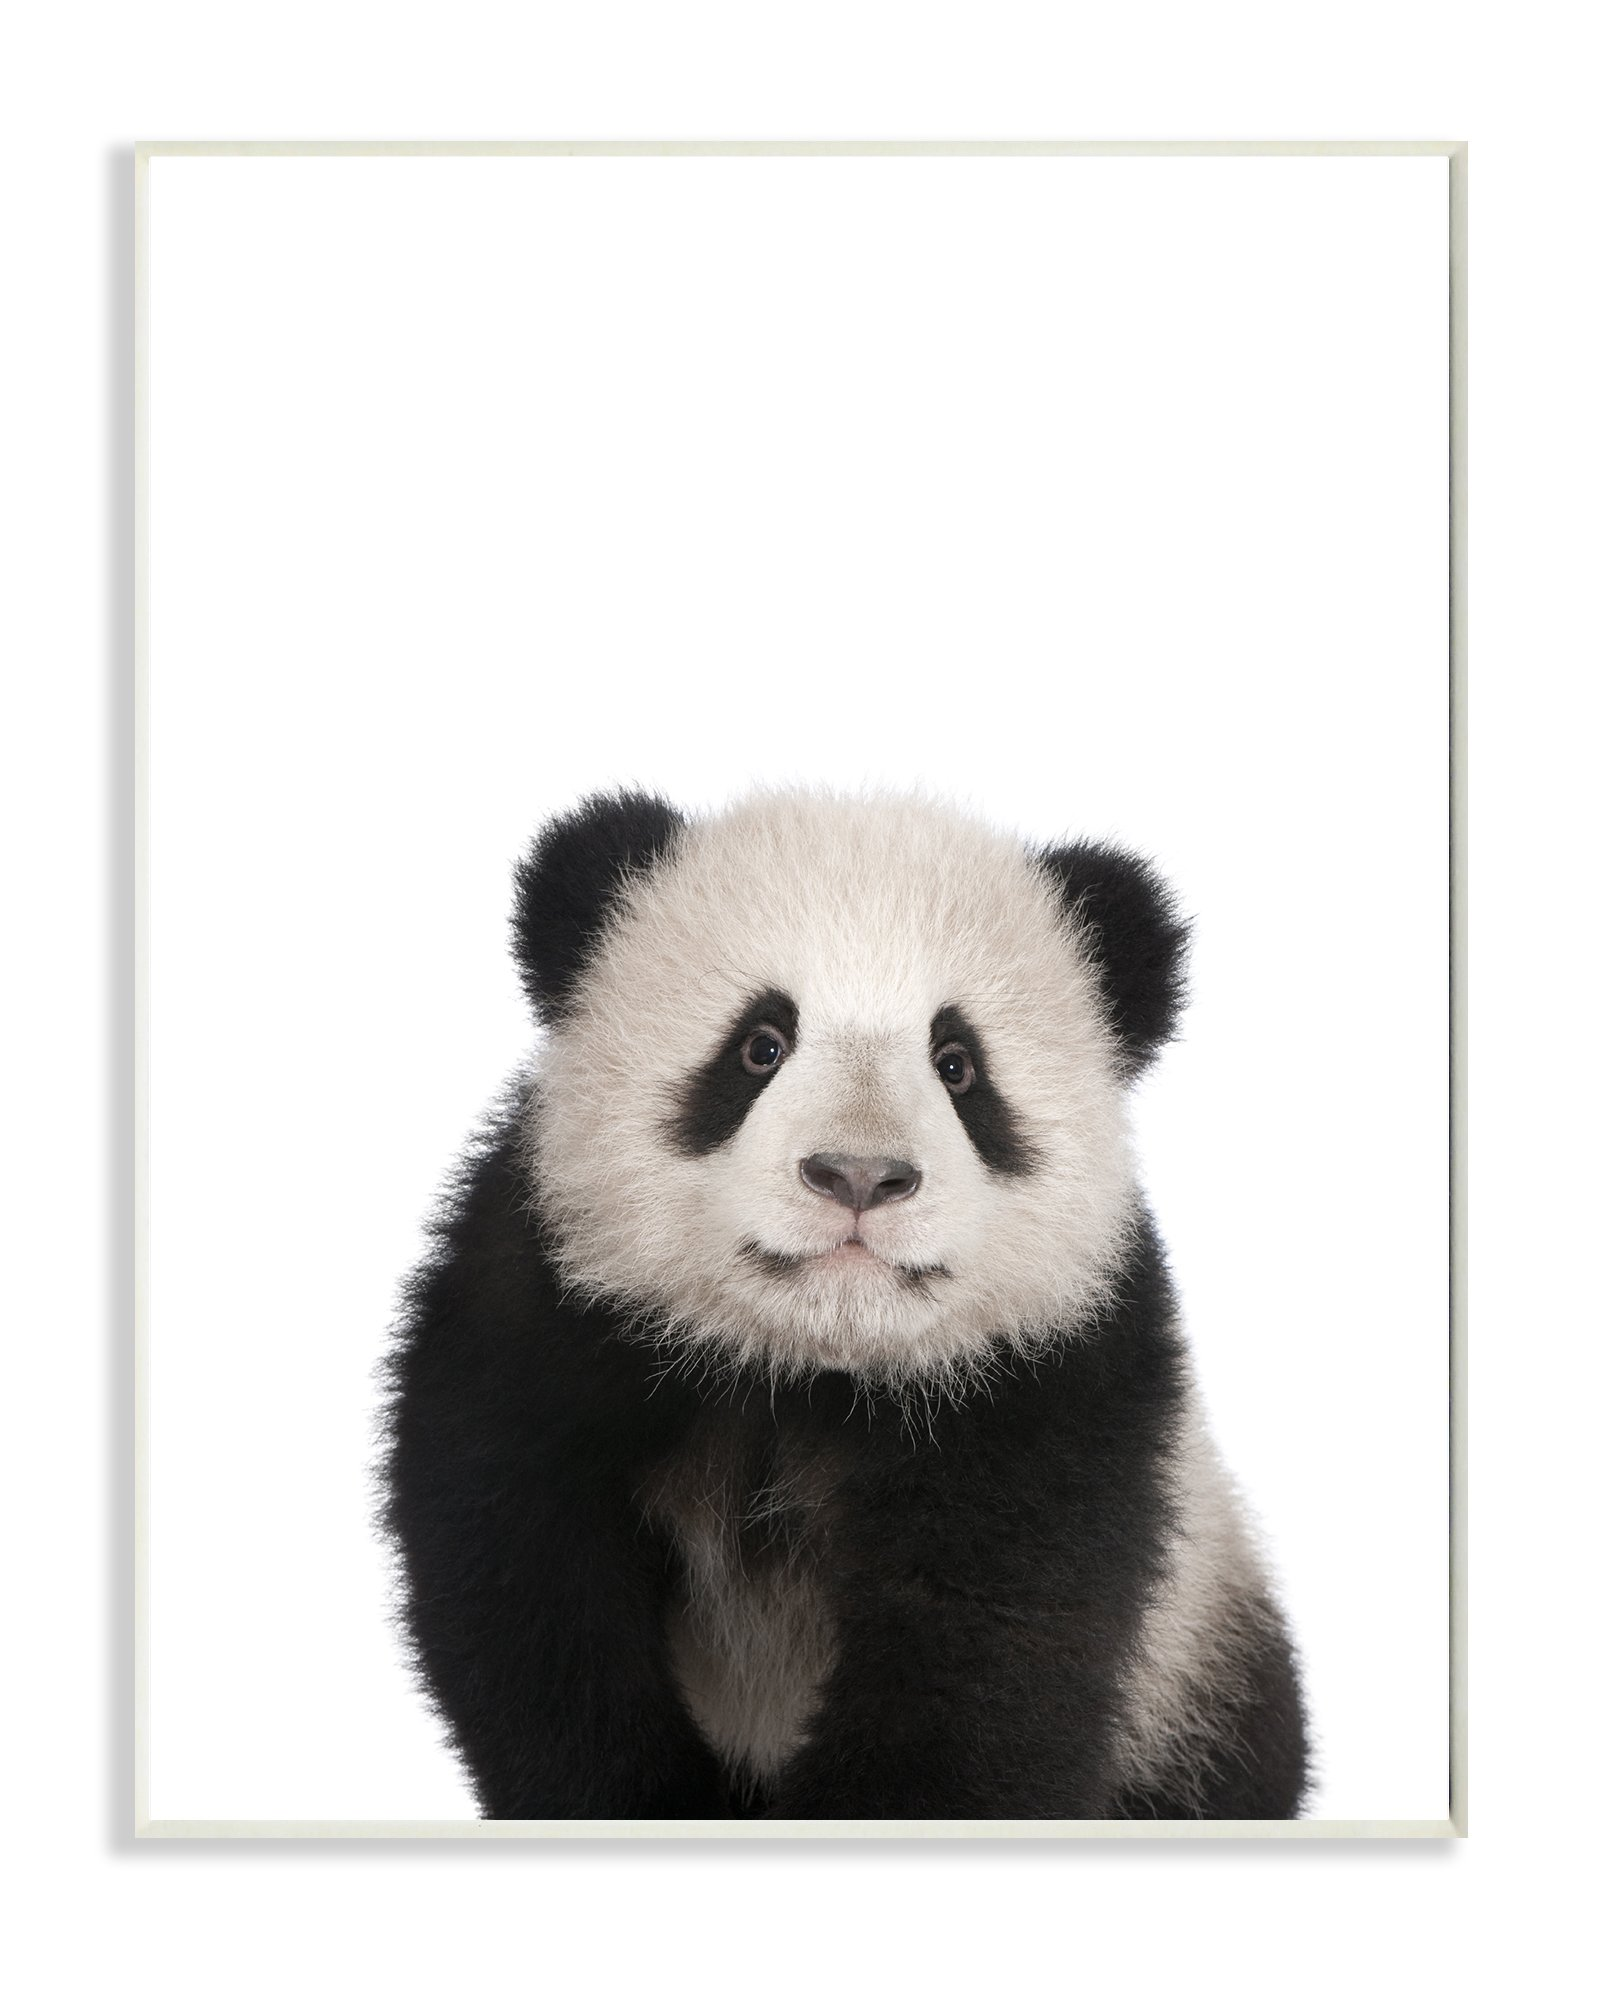 The Kids Room by Stupell Stupell Home Décor Baby Panda Studio Photo Wall Plaque Art, 10 x 0.5 x 15, Proudly Made in USA